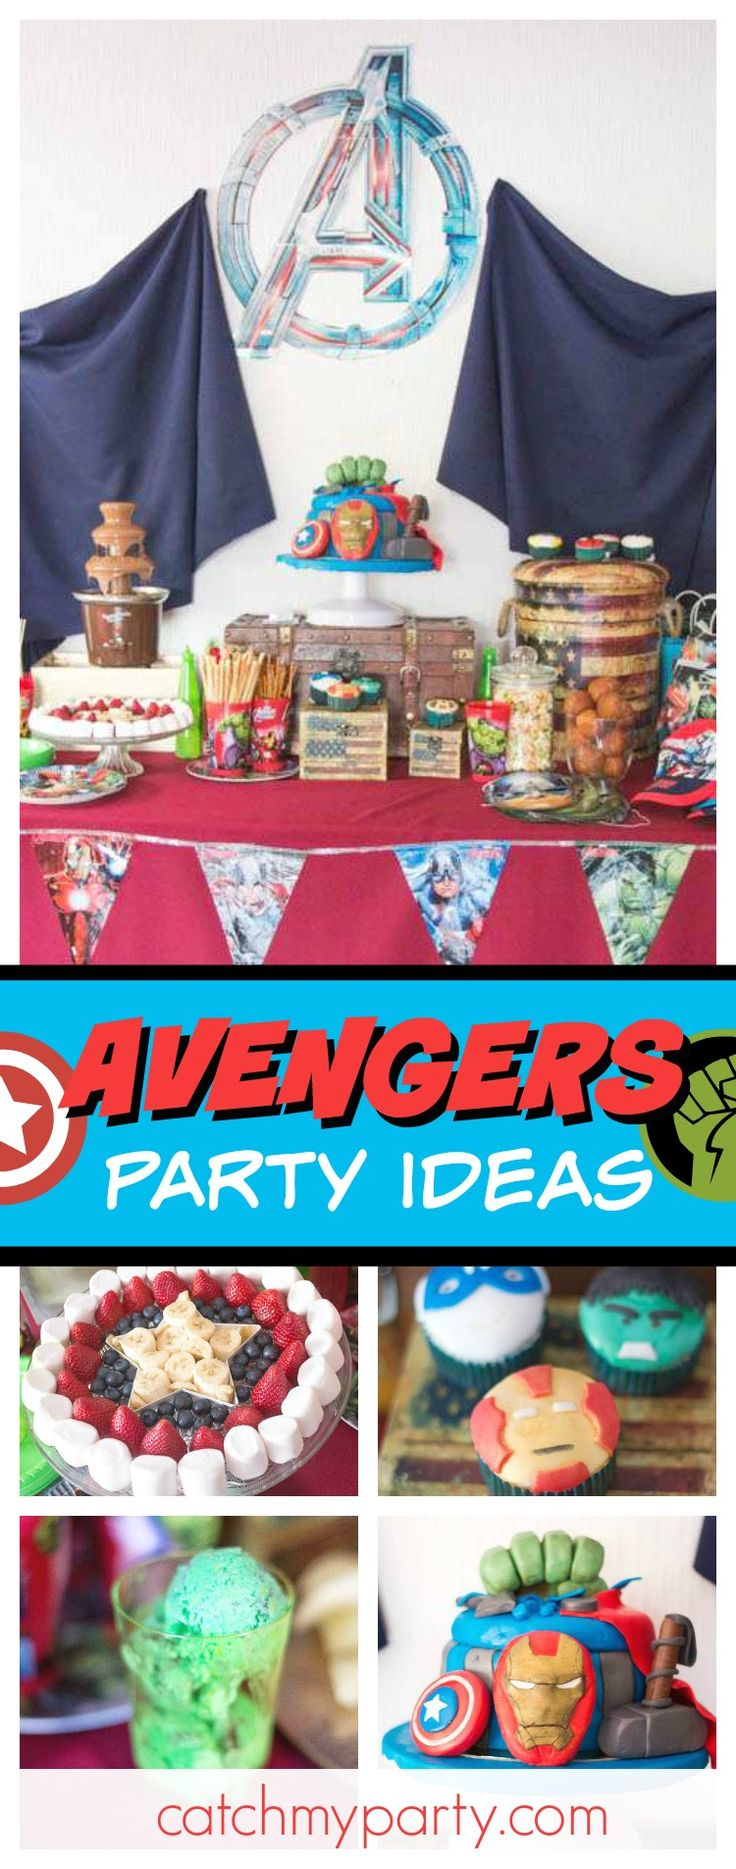 Check out this fantastic Avengers superhero birthday party. The birthday cake is incredible!! See more party ideas and share yours at CatchMyParty.com